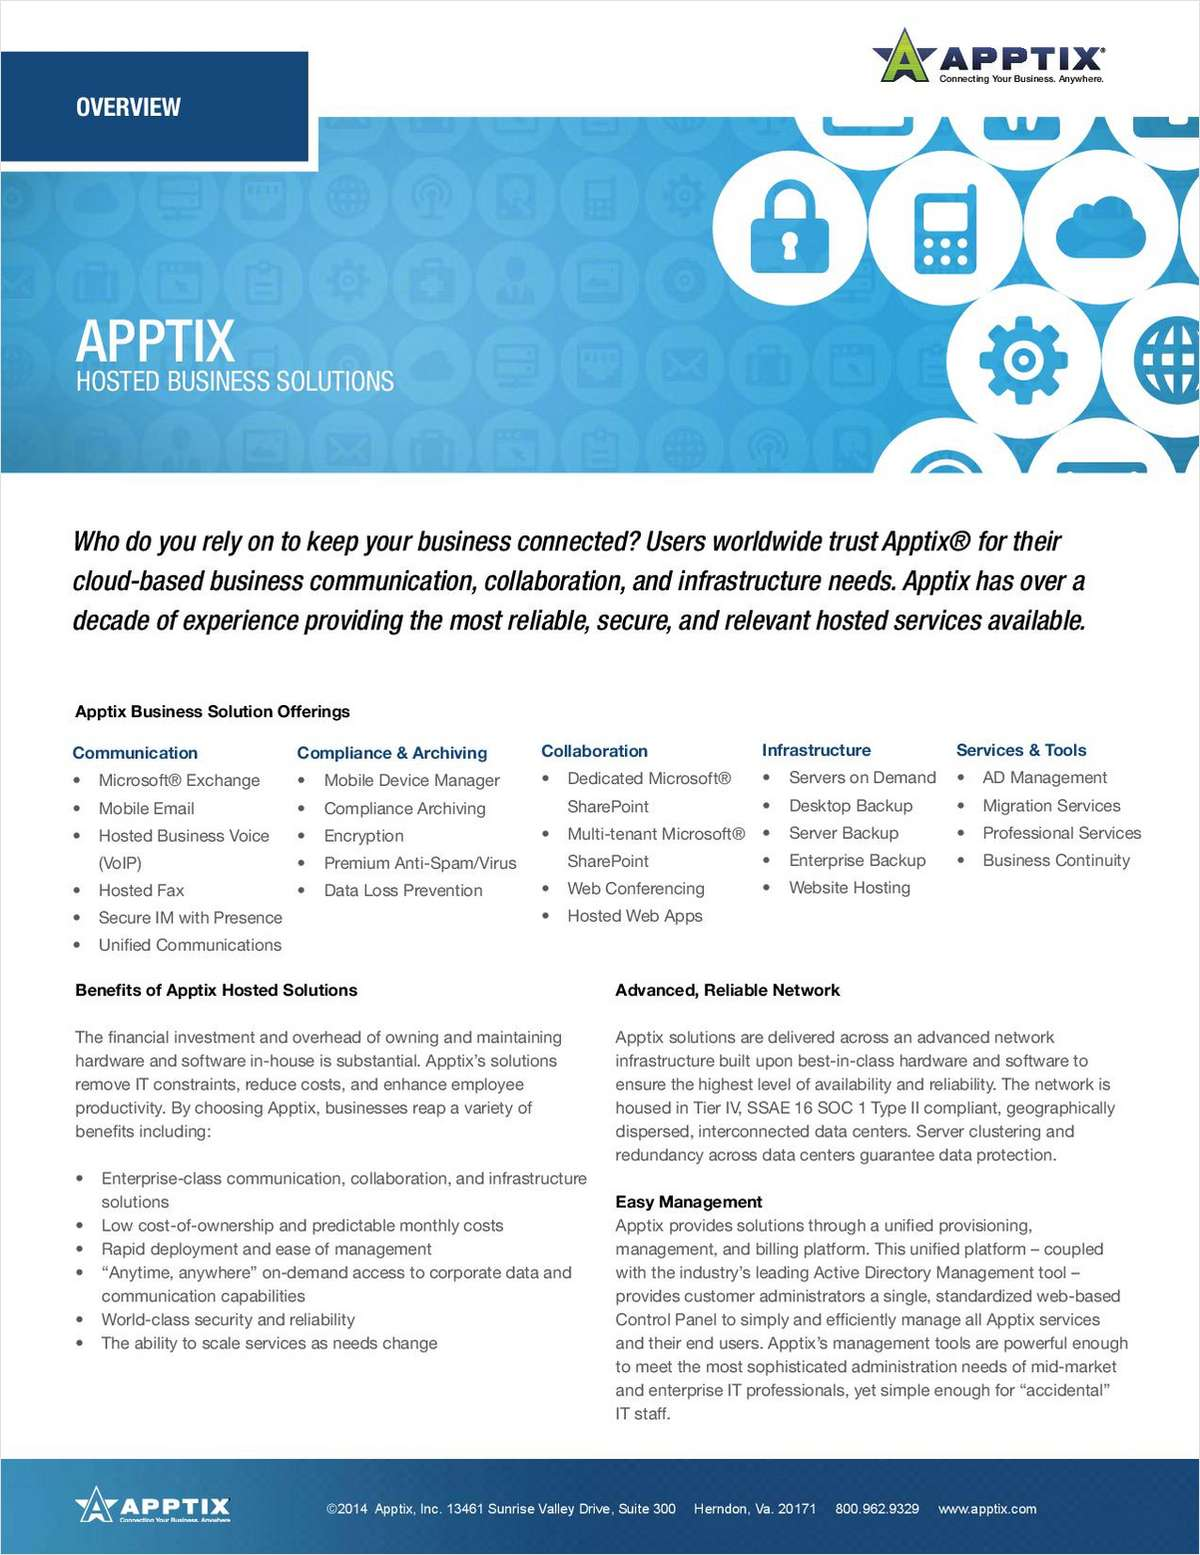 Apptix - Hosted Business Solutions